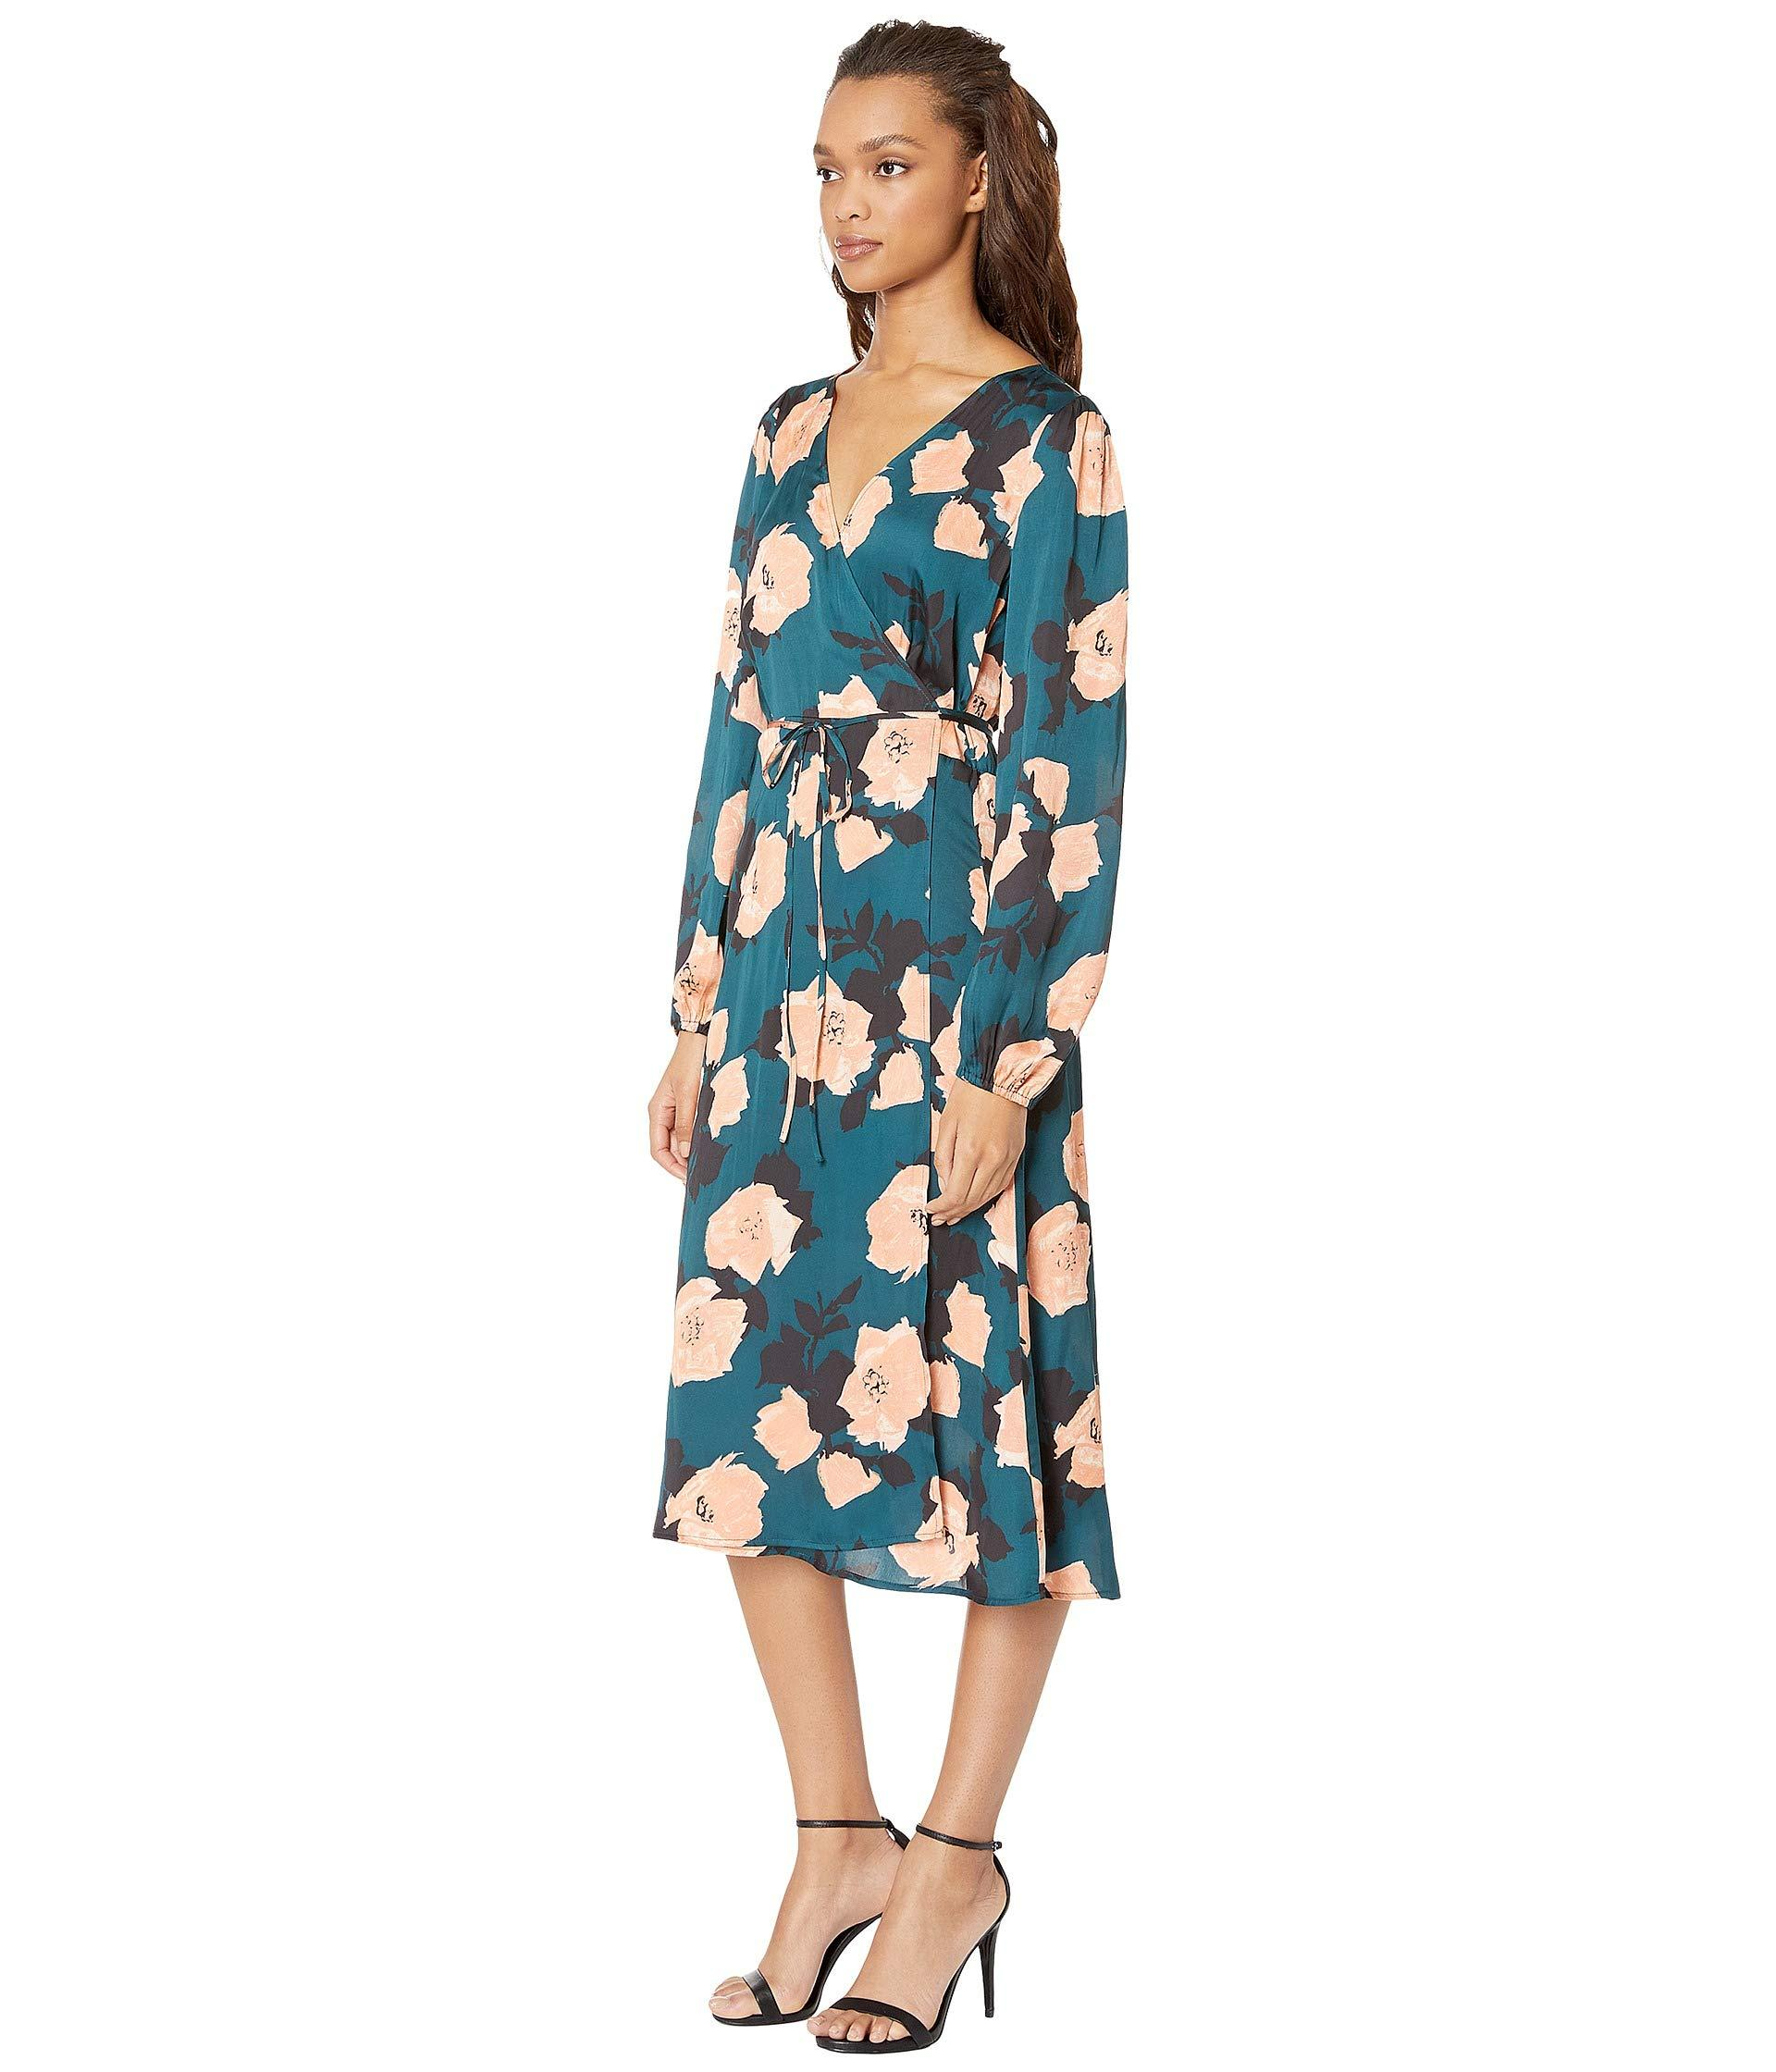 e03f6a9d44f Lyst - PAIGE Fontaine Floral-print Satin Wrap Dress in Blue - Save 67%